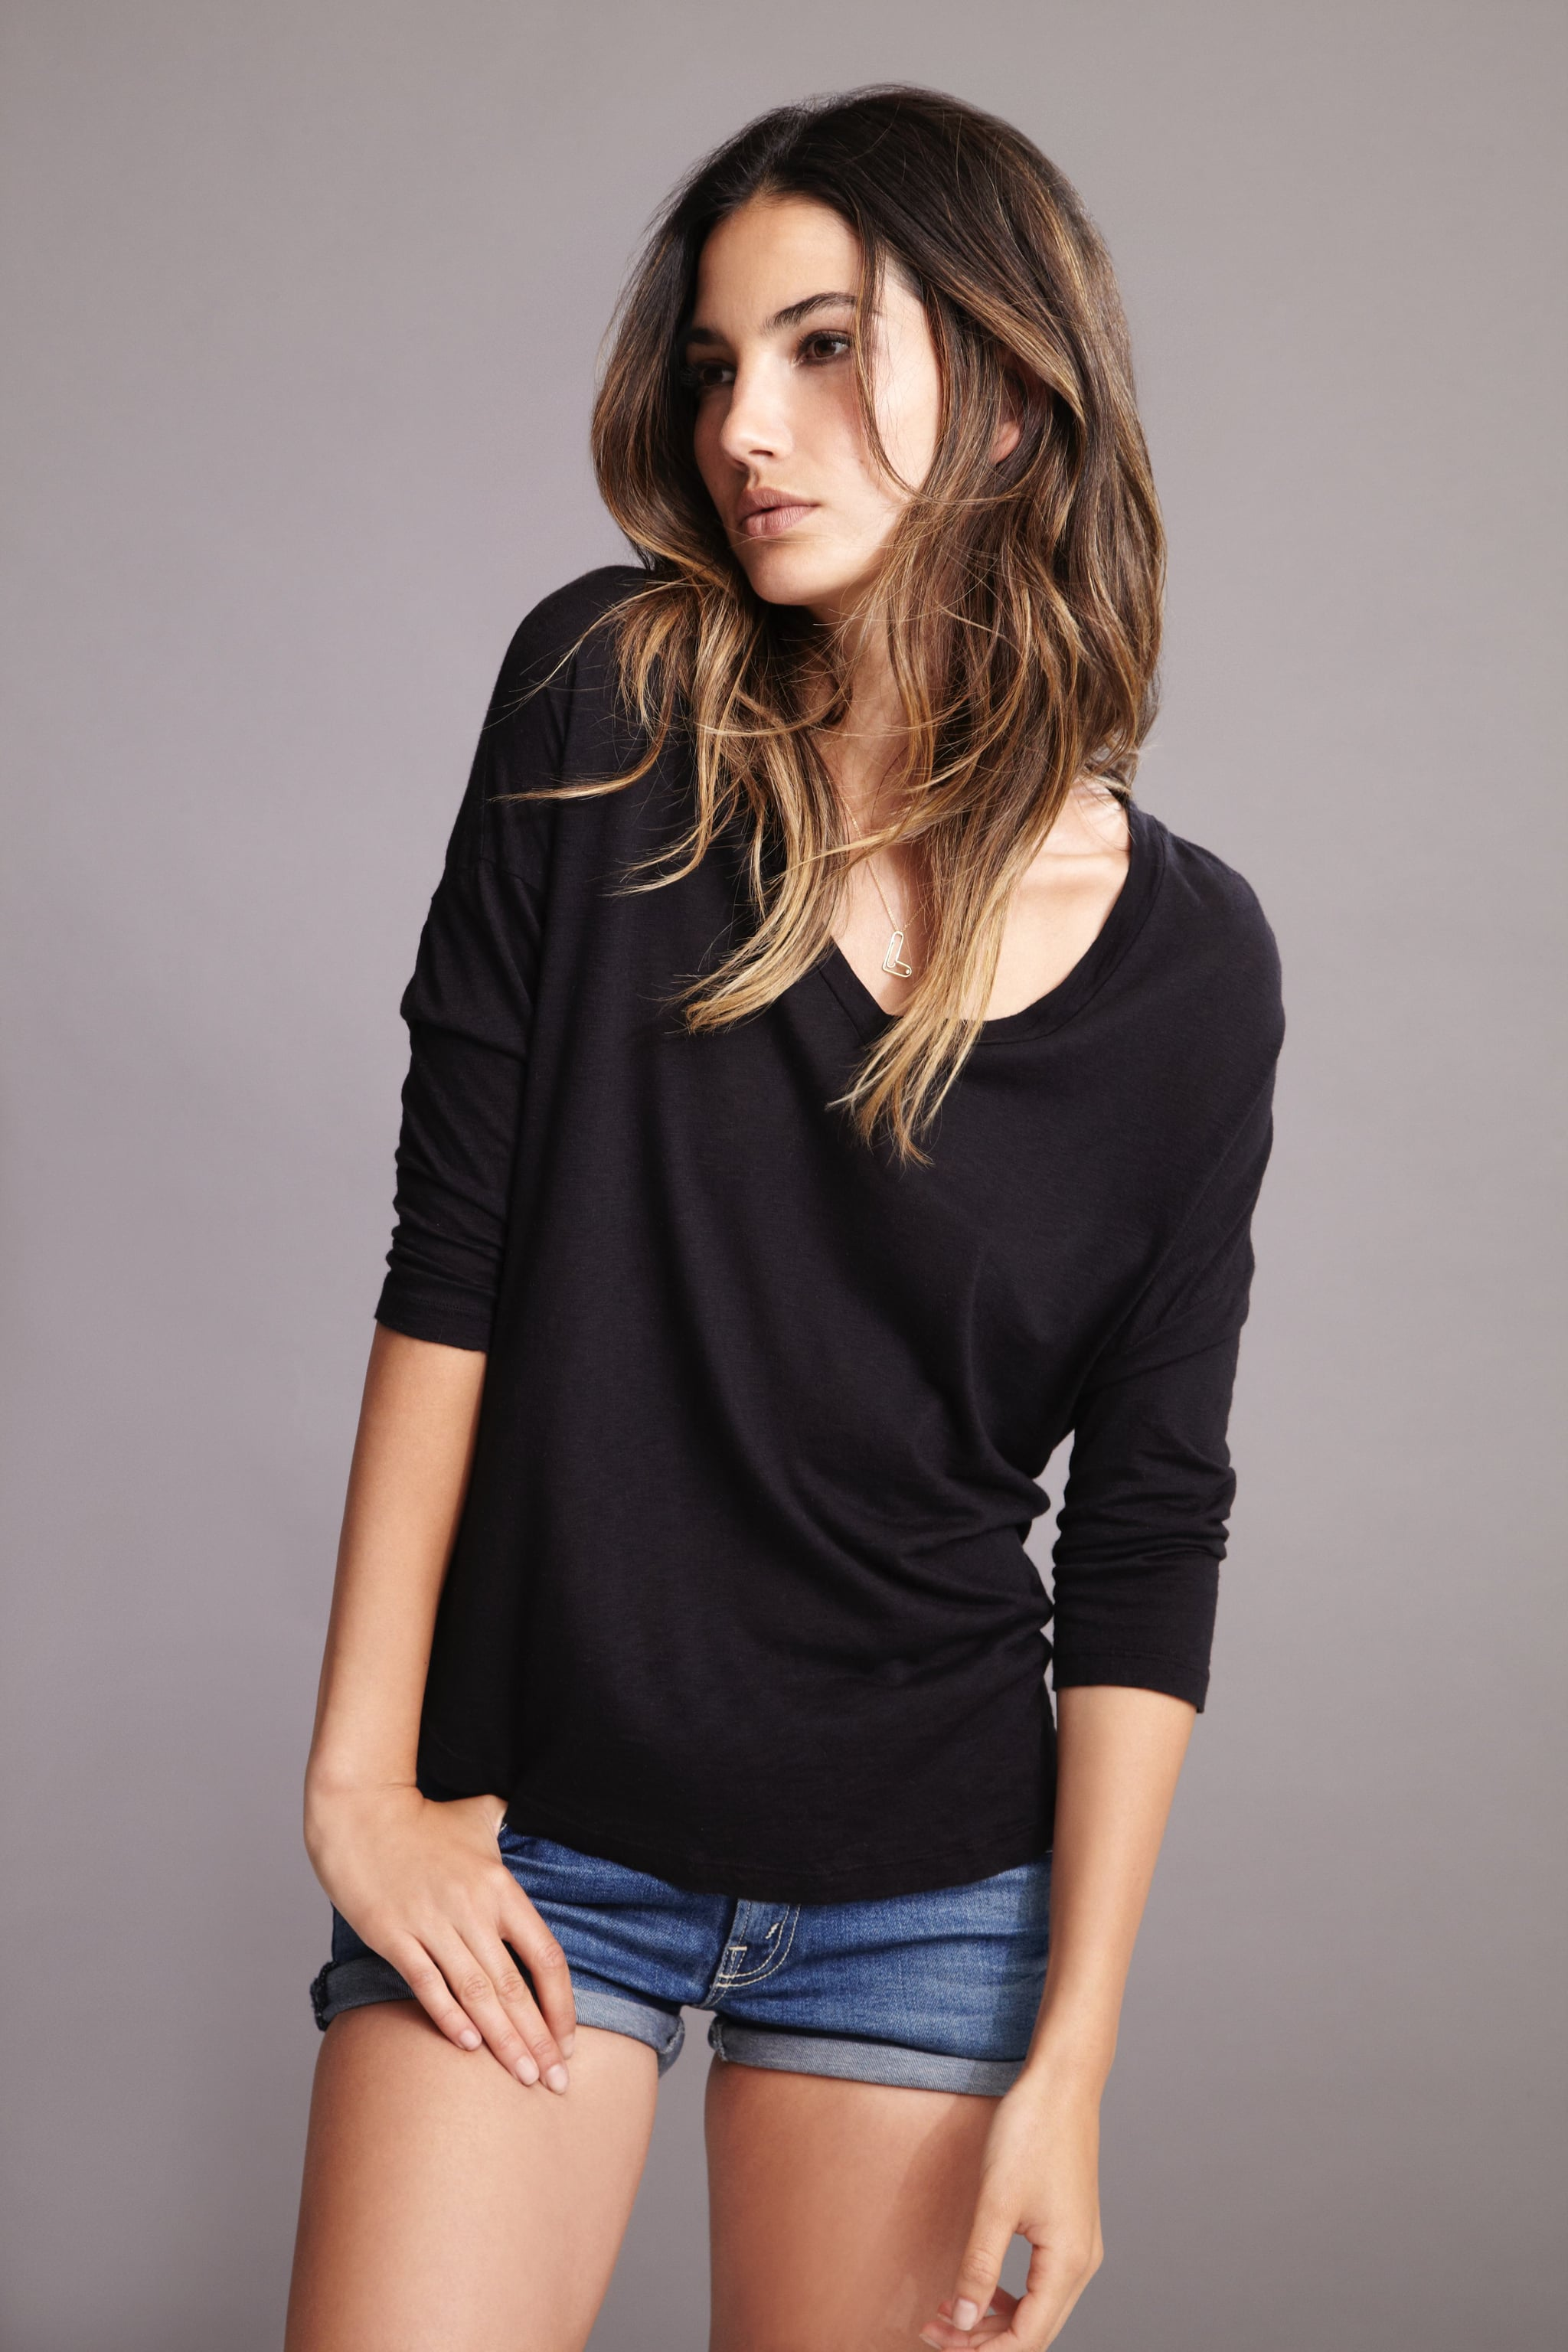 Lily Aldridge For Velvet Maud Luxe Slub Dolman Tee ($79) Source: Courtesy of Velvet